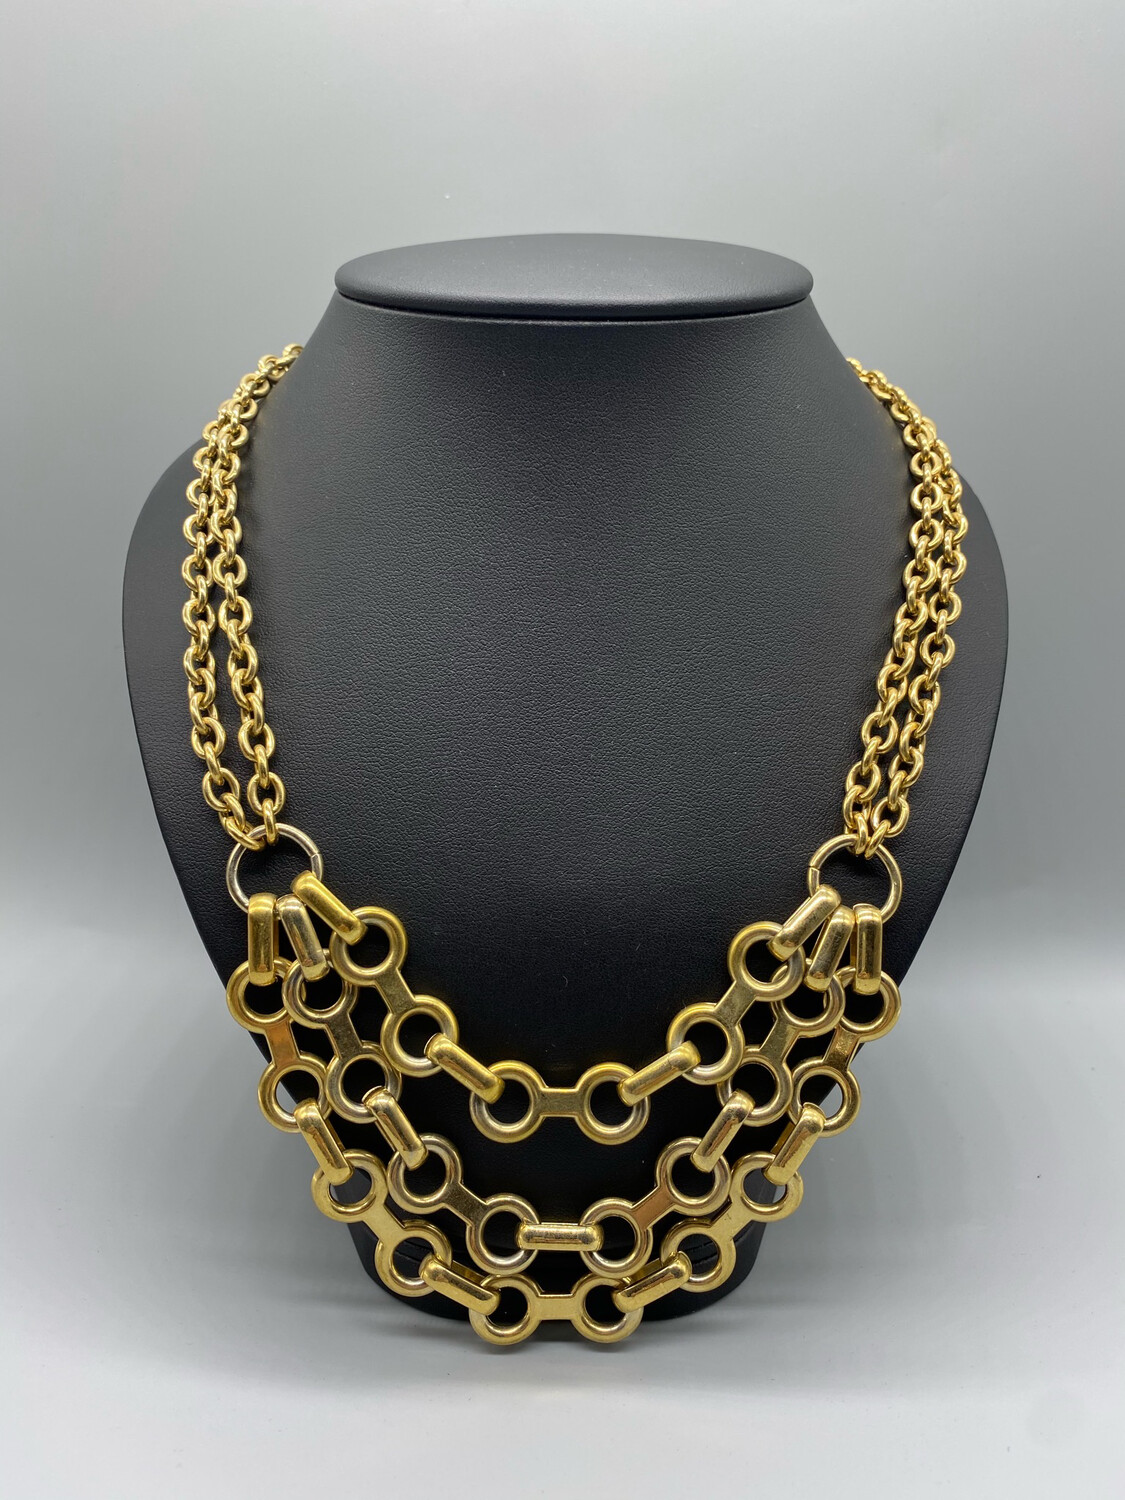 Vintage Circle Gold Chain Necklace